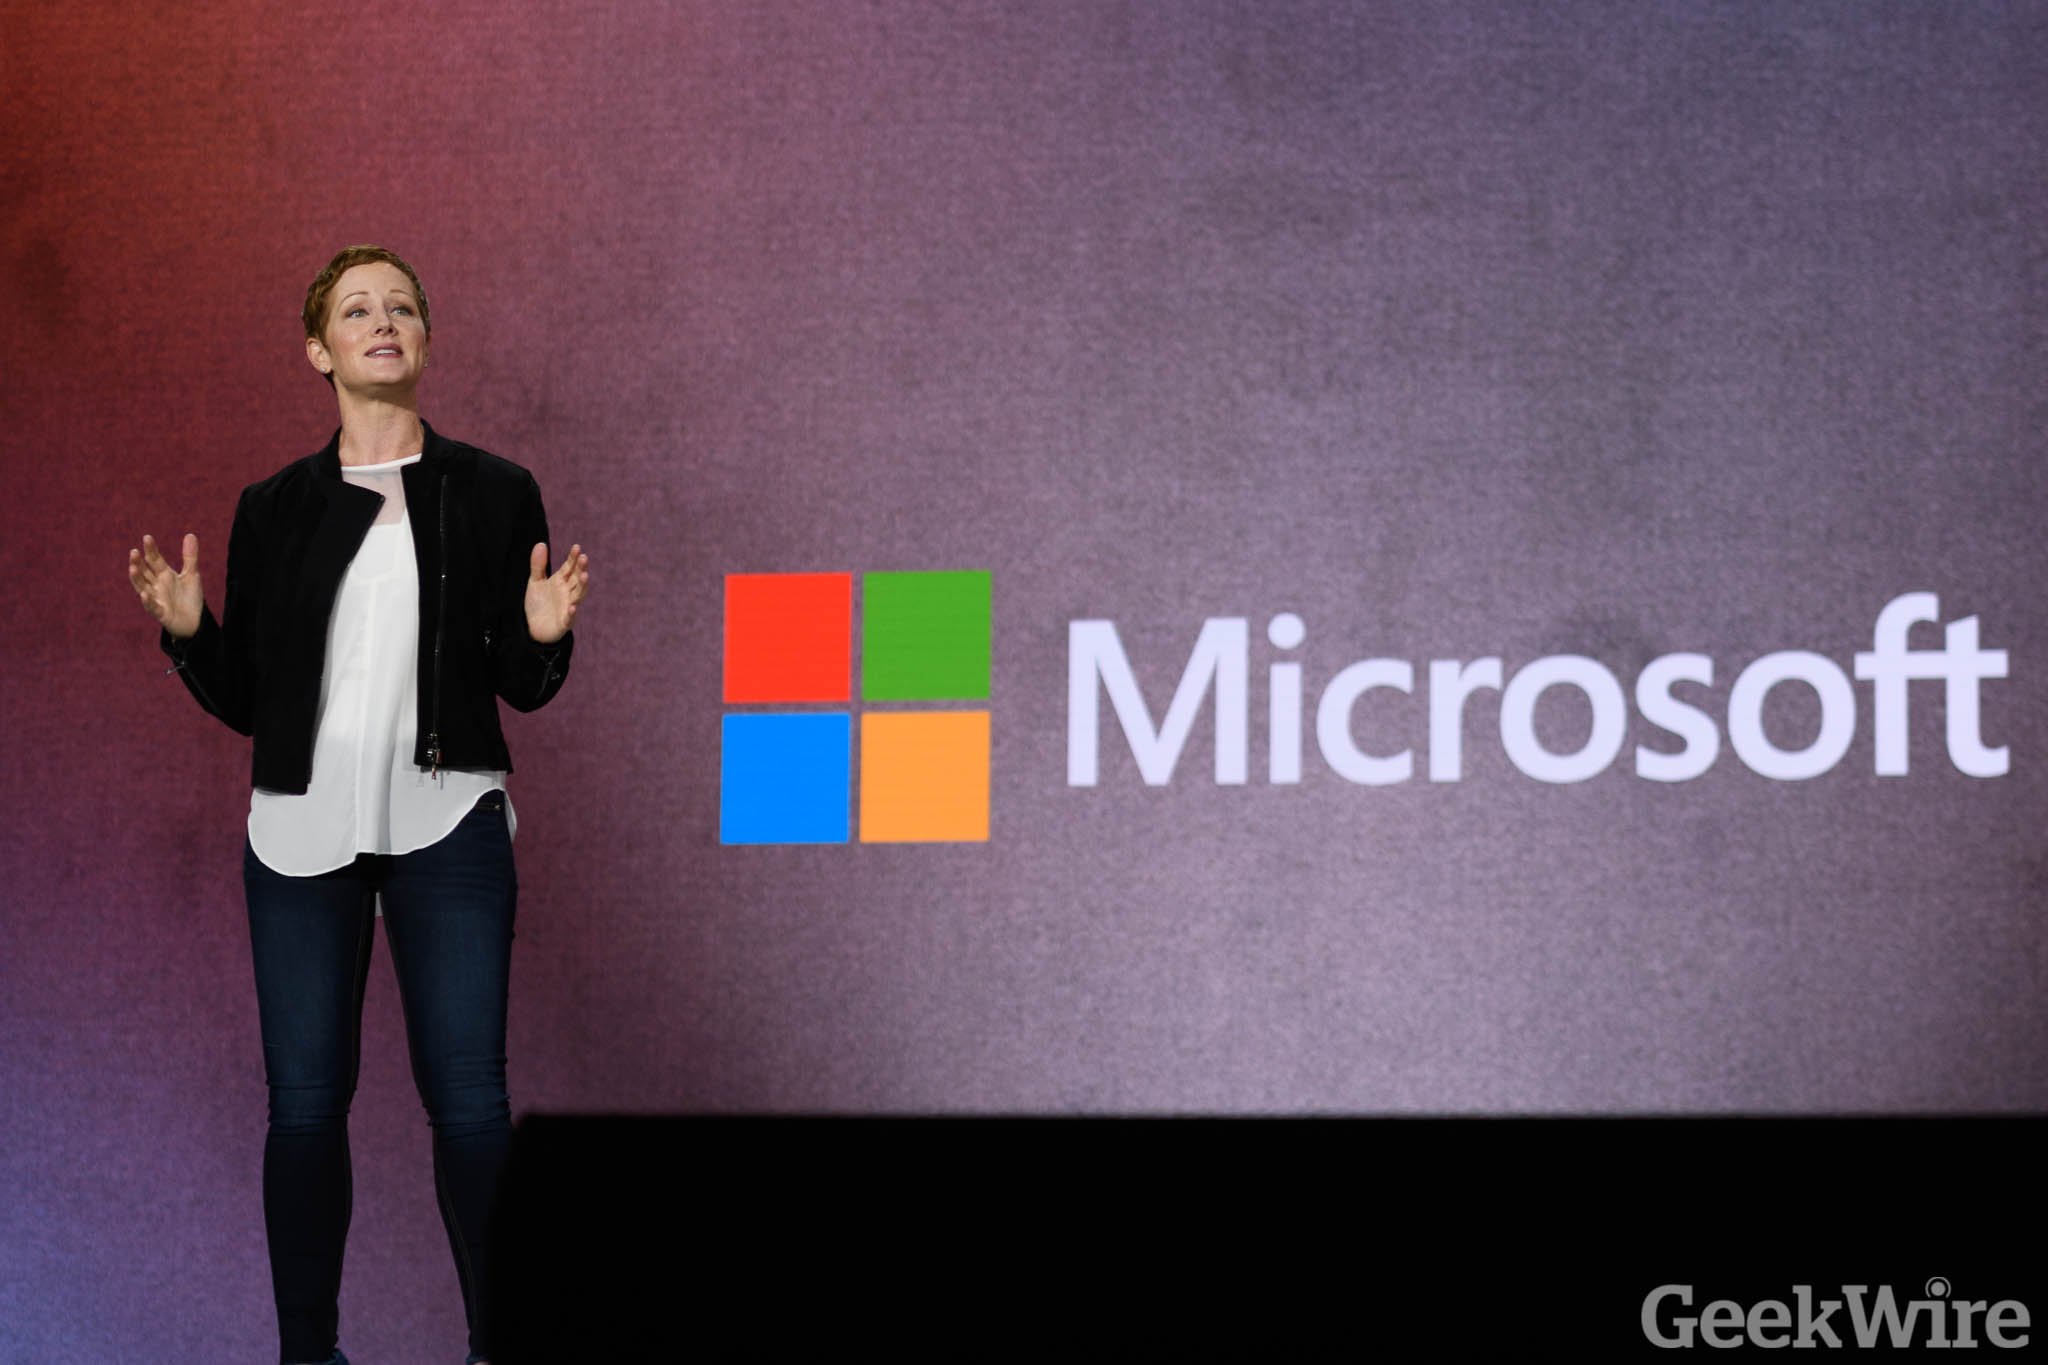 Microsoft's 'Azure Stack' for on-premises servers will use